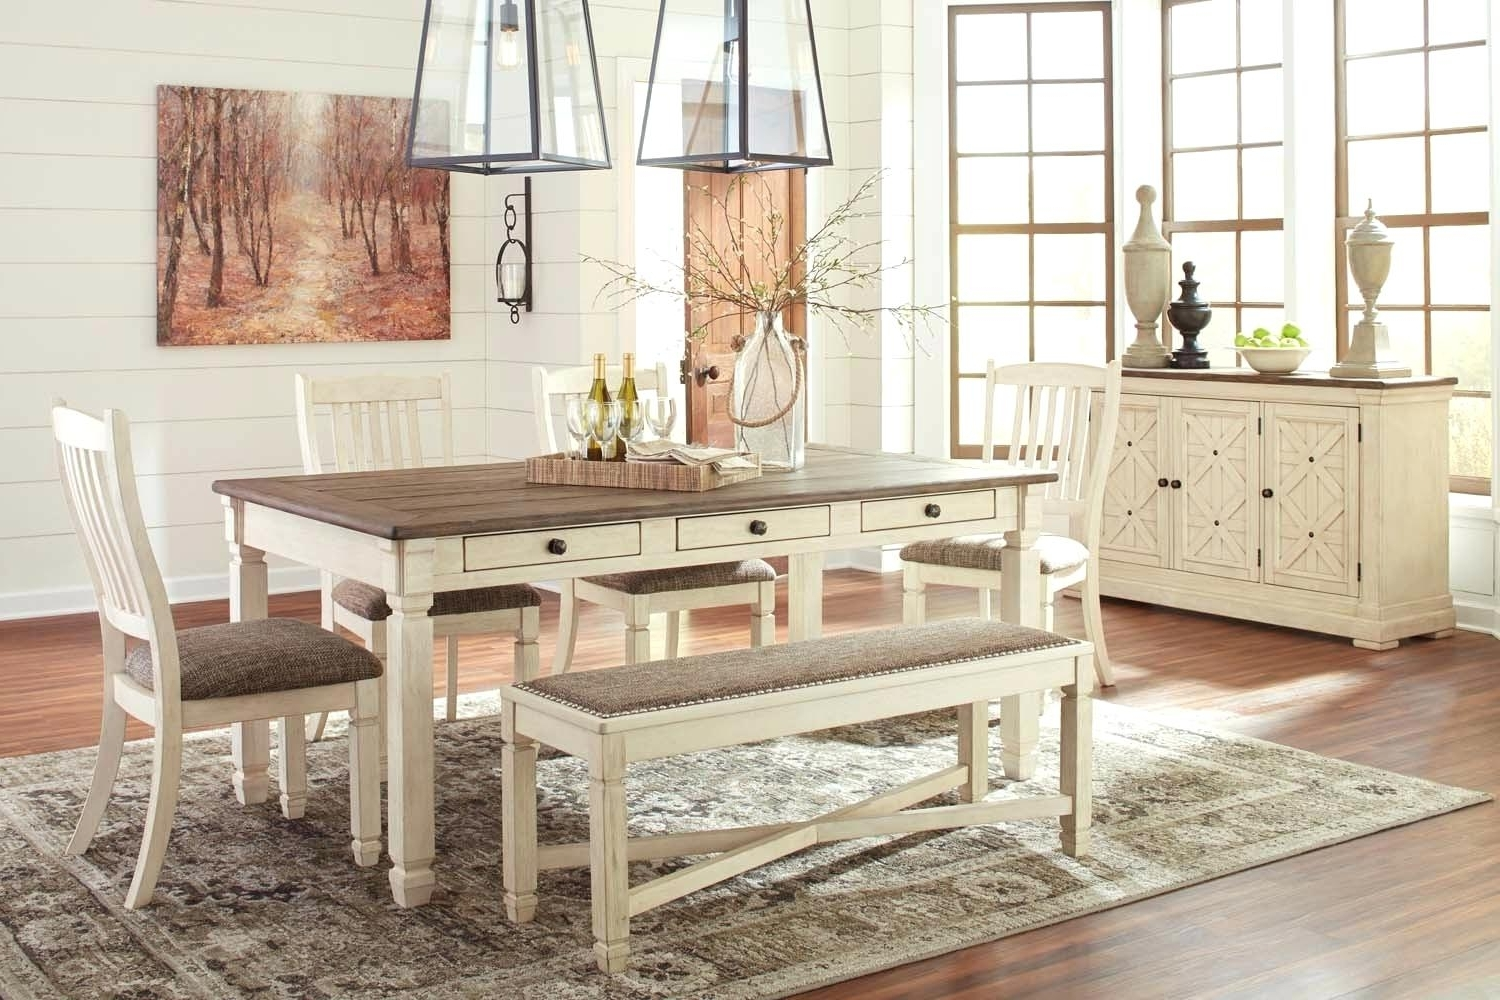 Well Liked 6 Piece Dining Room Set Sets Bravo Counter Height Corner Seating 2 With Regard To Mallard 7 Piece Extension Dining Sets (View 10 of 25)